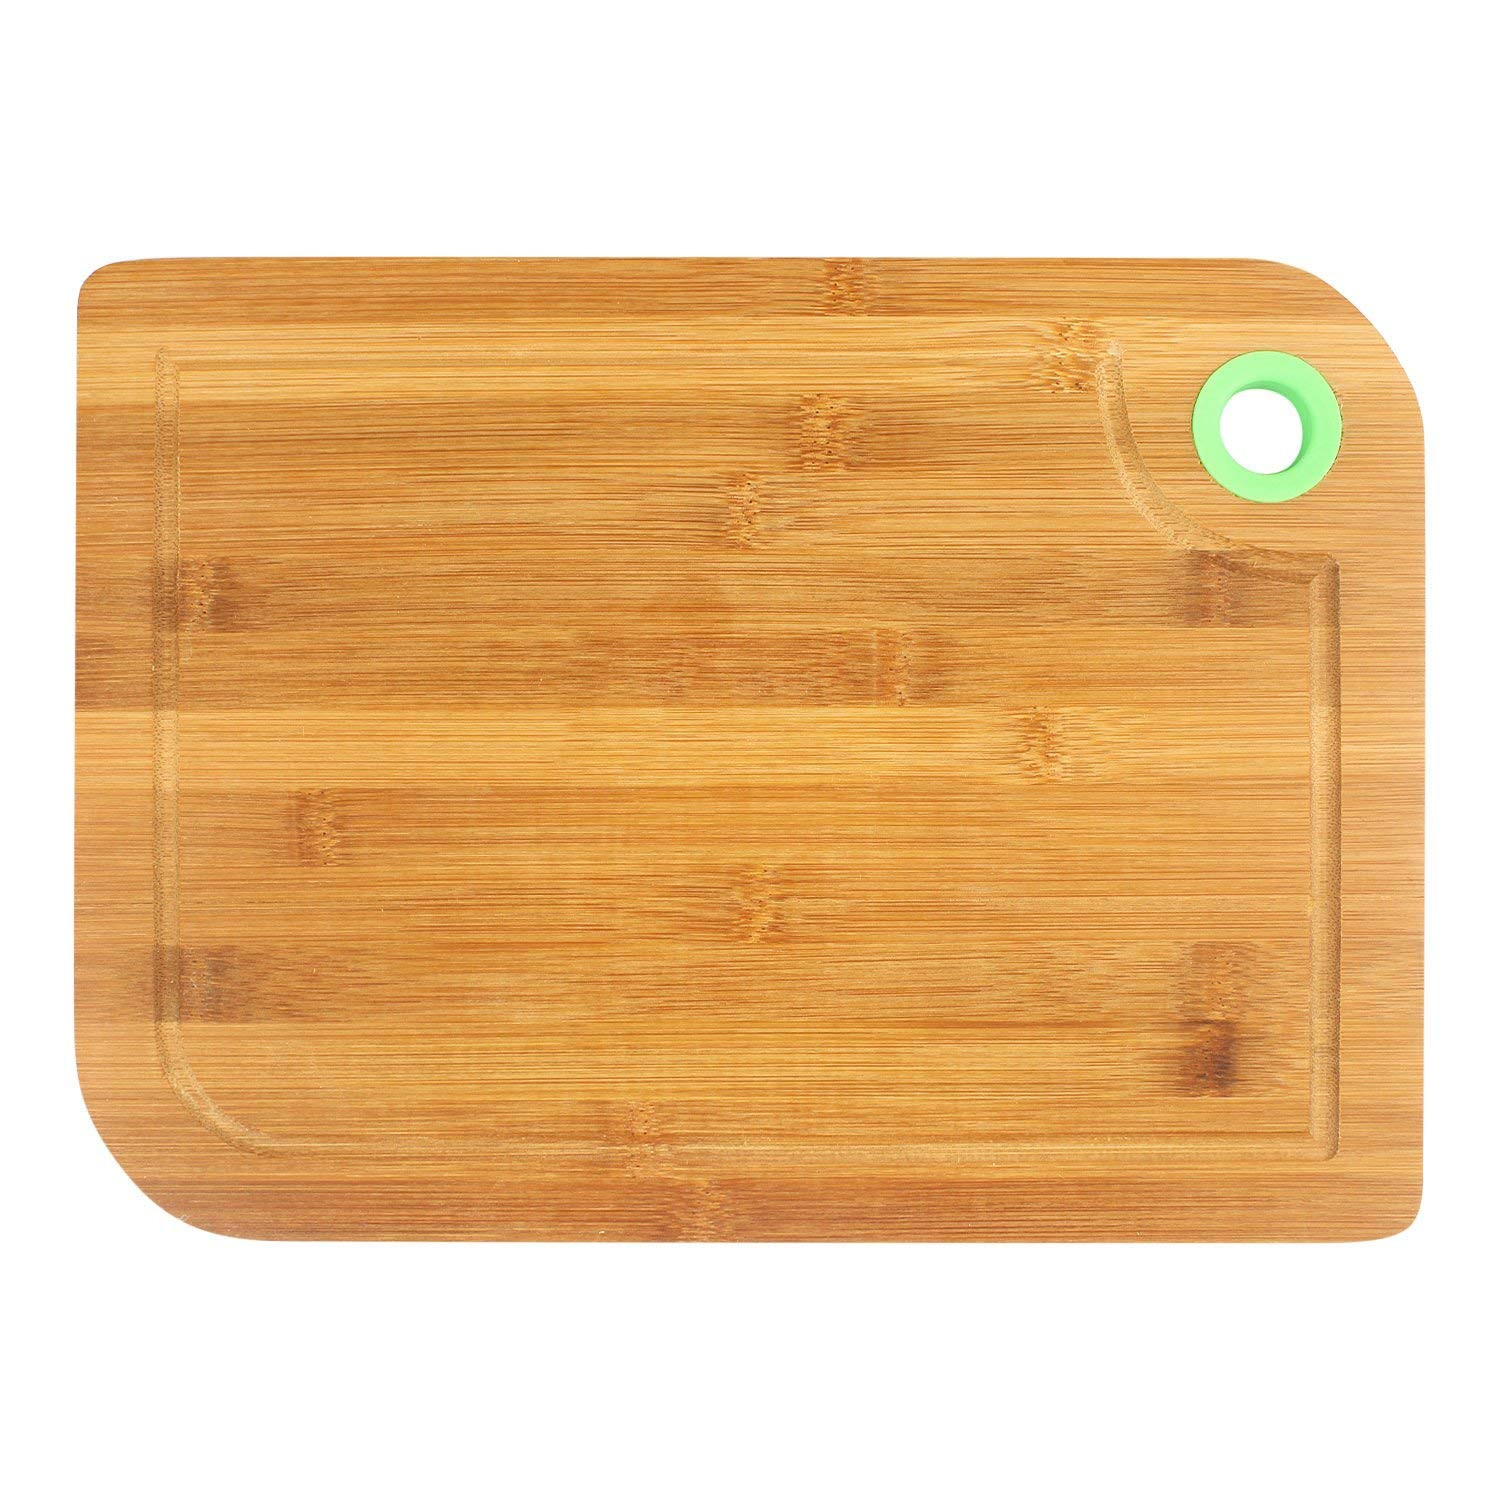 bamboo hardwood flooring reviews of buy hokipo thick bamboo wooden chopping board with finger hole intended for buy hokipo thick bamboo wooden chopping board with finger hole juice groove 33 x 23 cm online at low prices in india amazon in